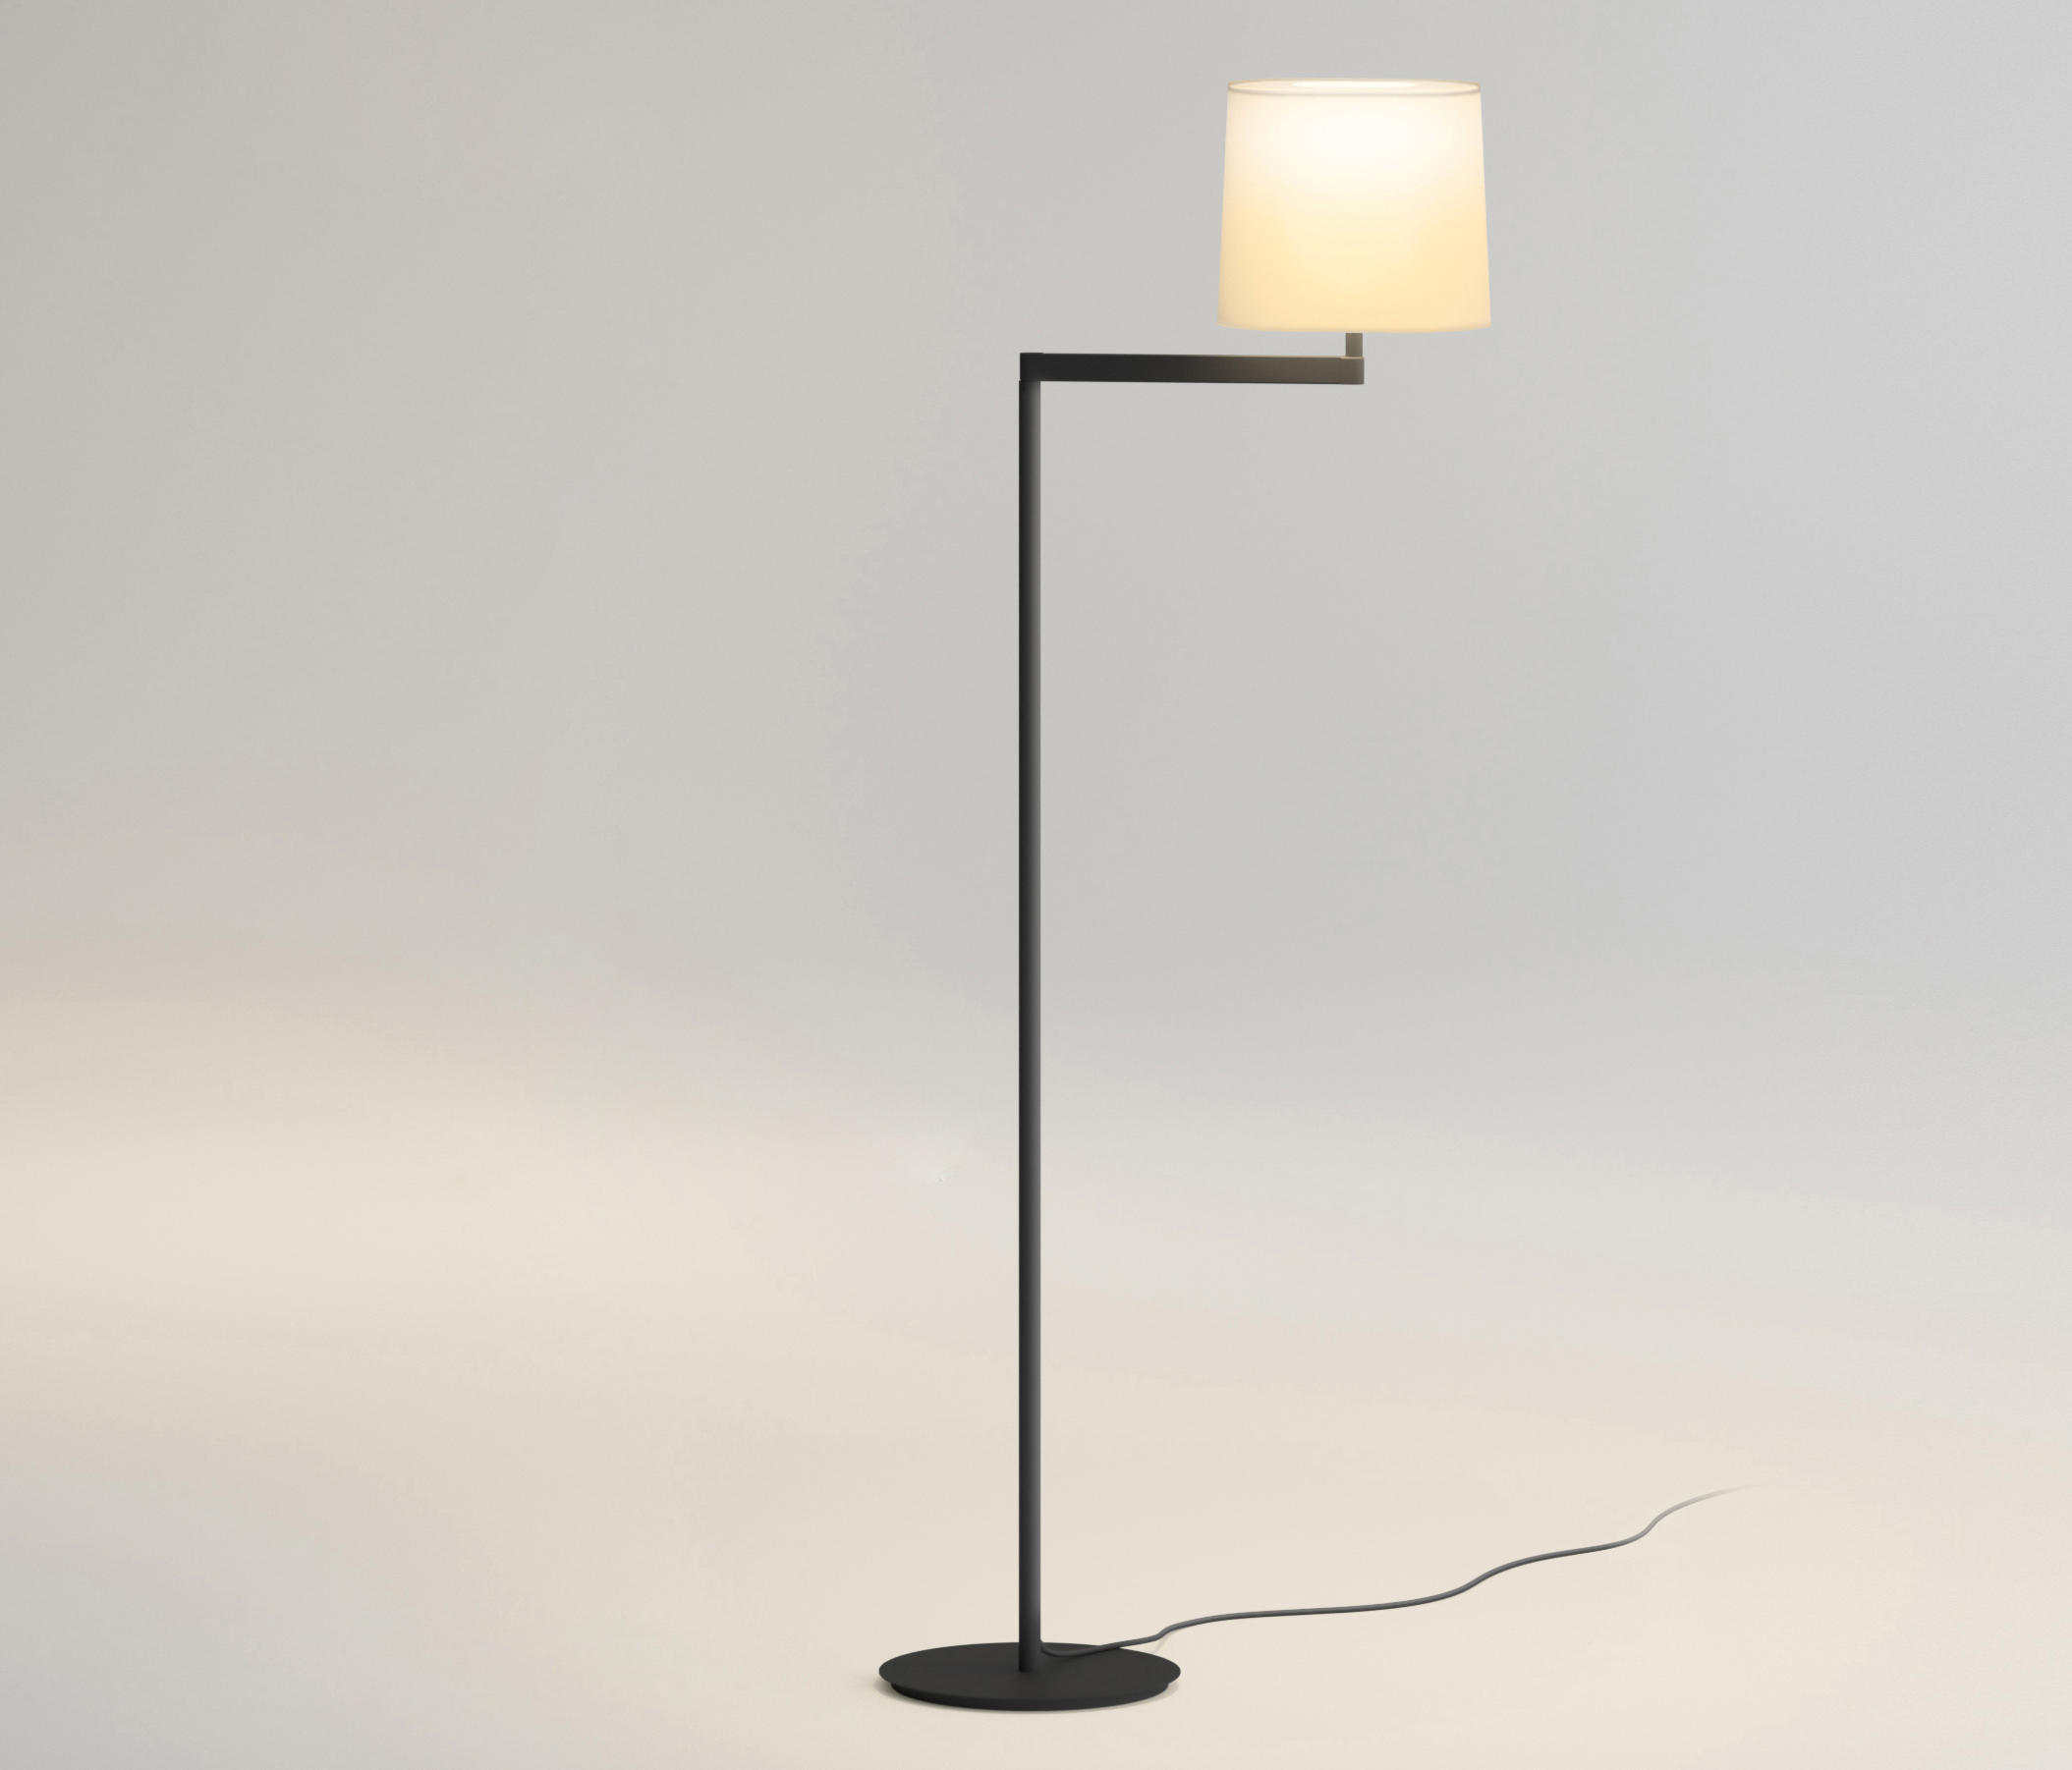 Artemide Wandlampe Swing 0503 Floor Lamp Free Standing Lights From Vibia Architonic